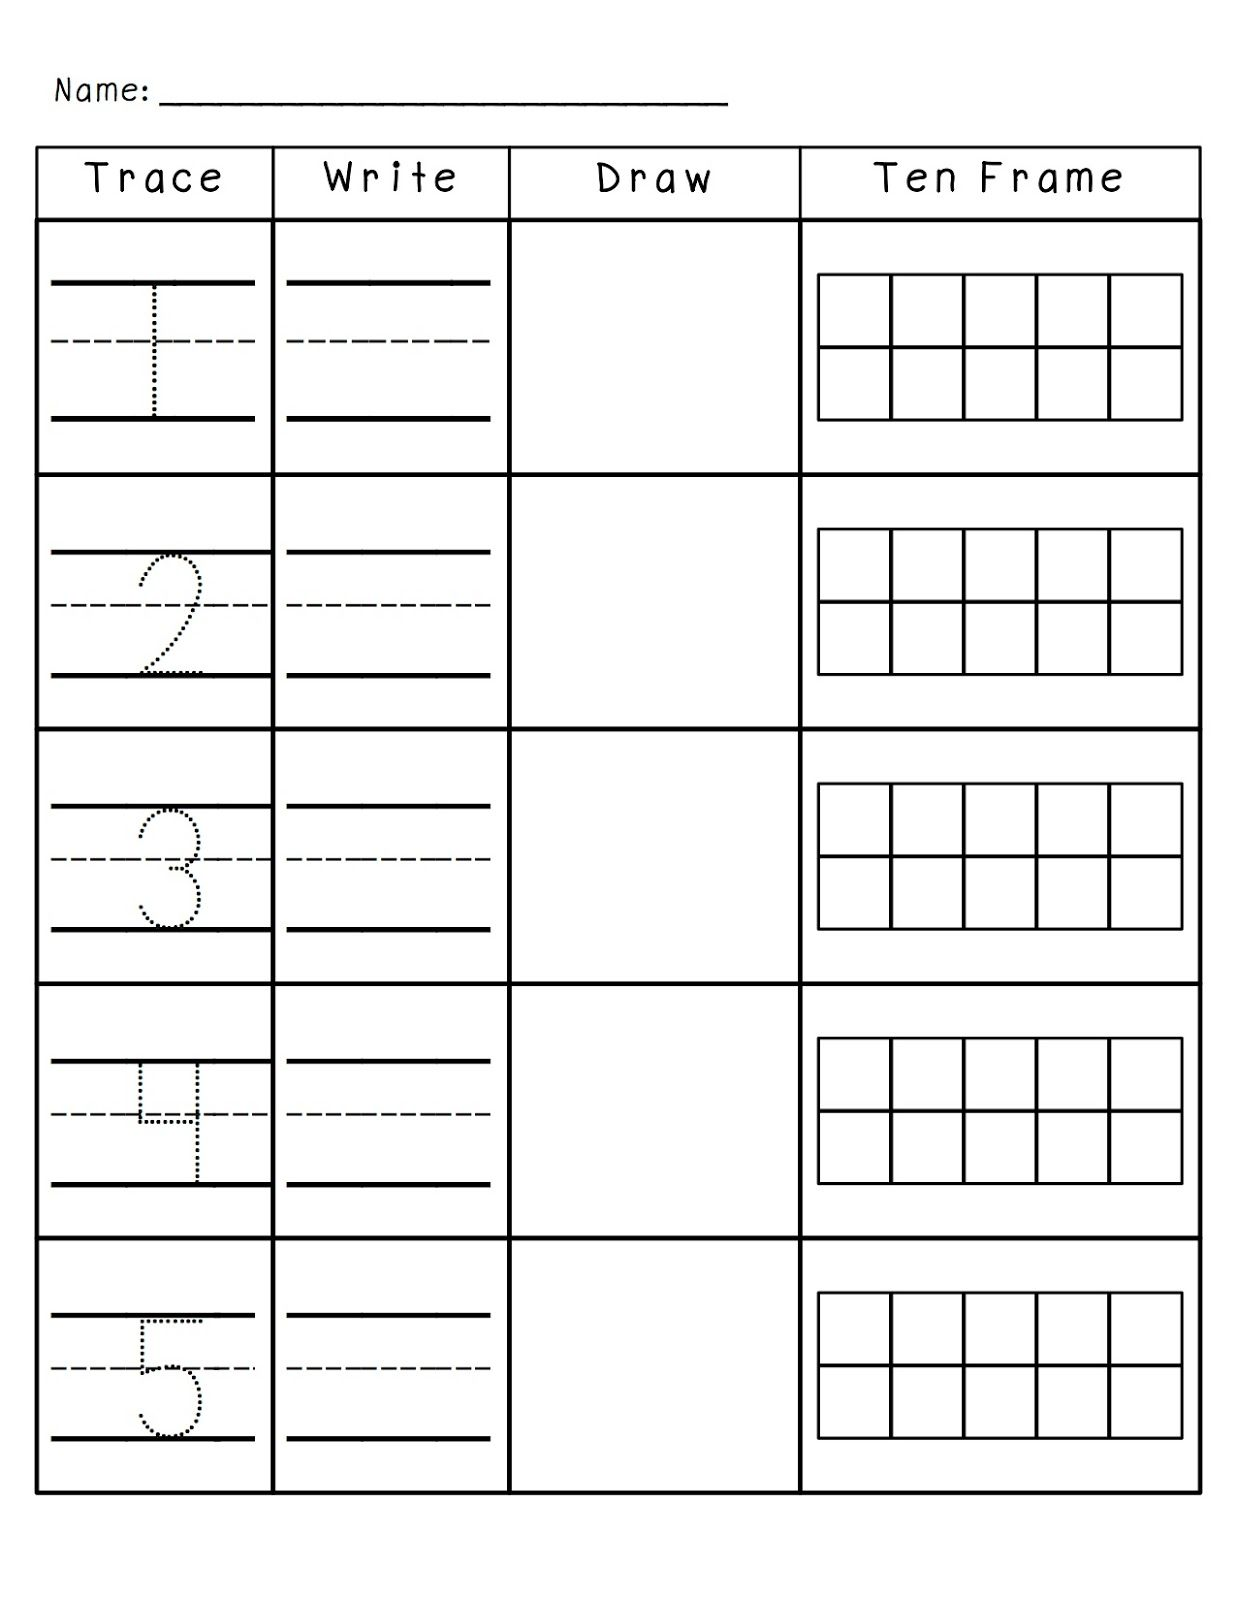 Number Practice 1 10 Trace Write Draw Fill In Ten